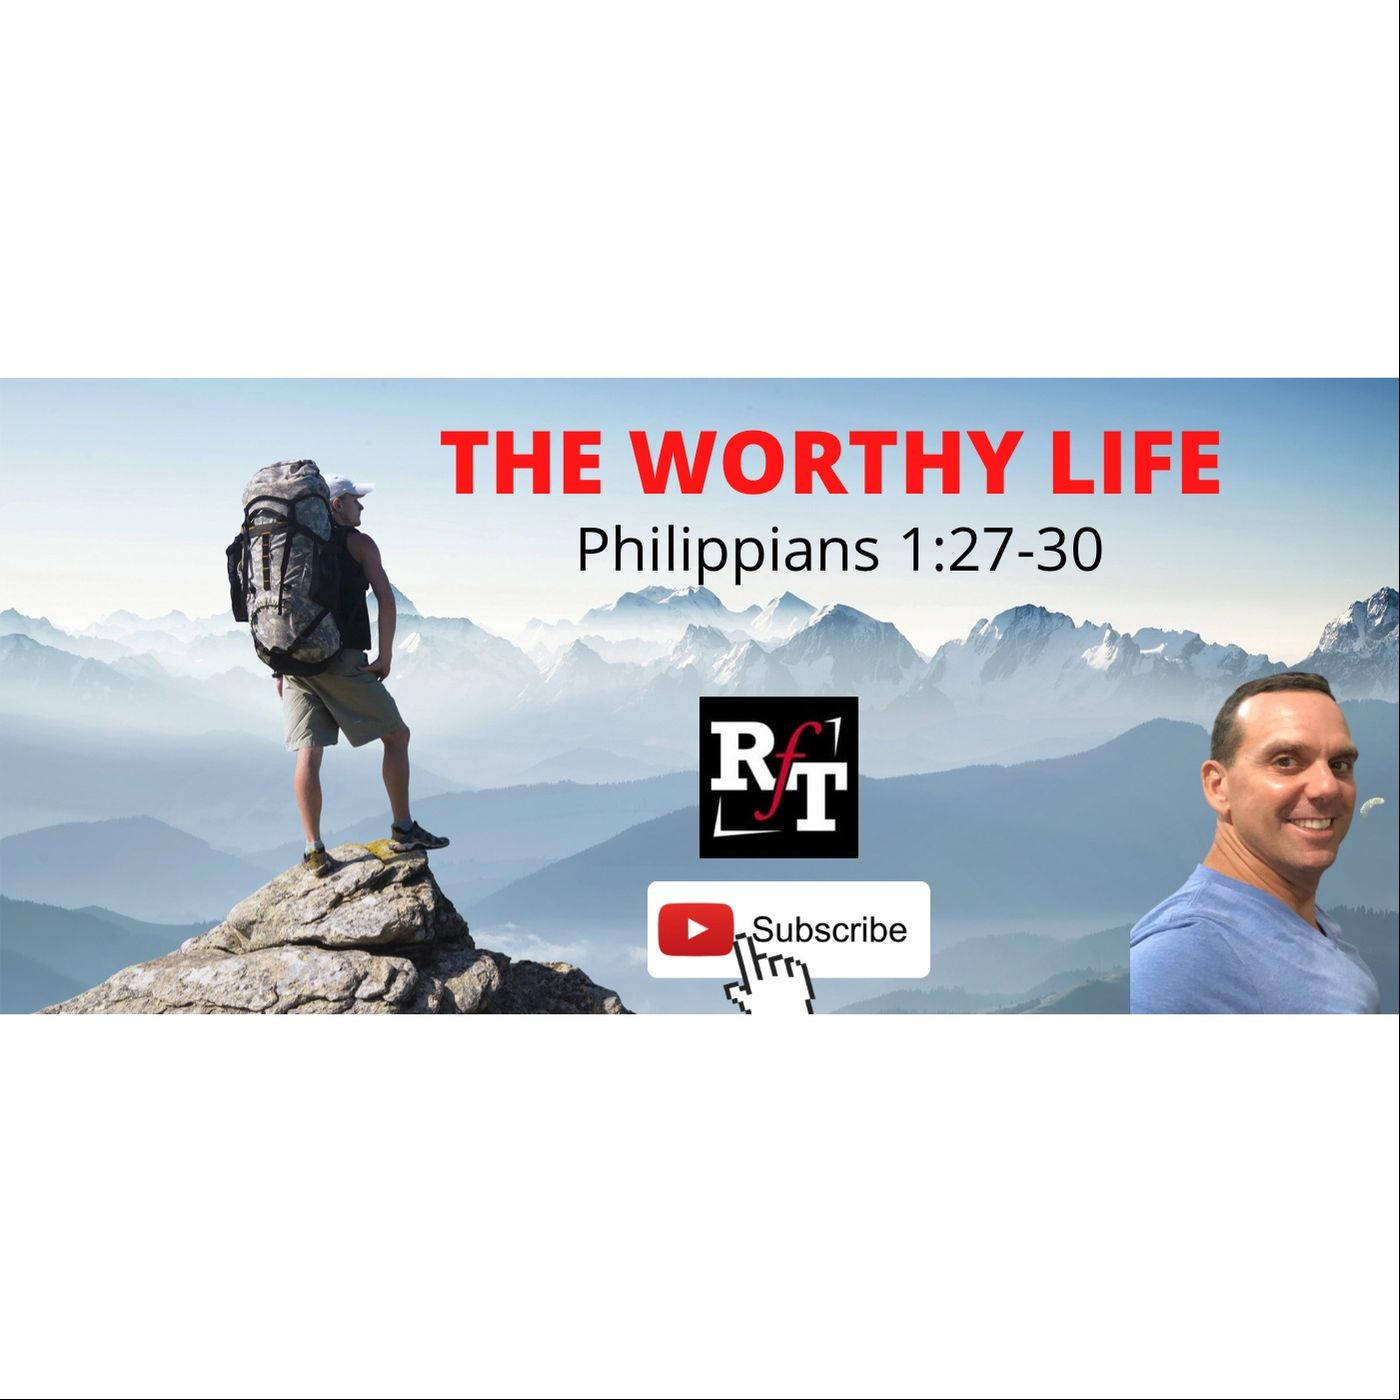 PT1-THE WORTHY LIFE - 3:9:21, 1.04 PM